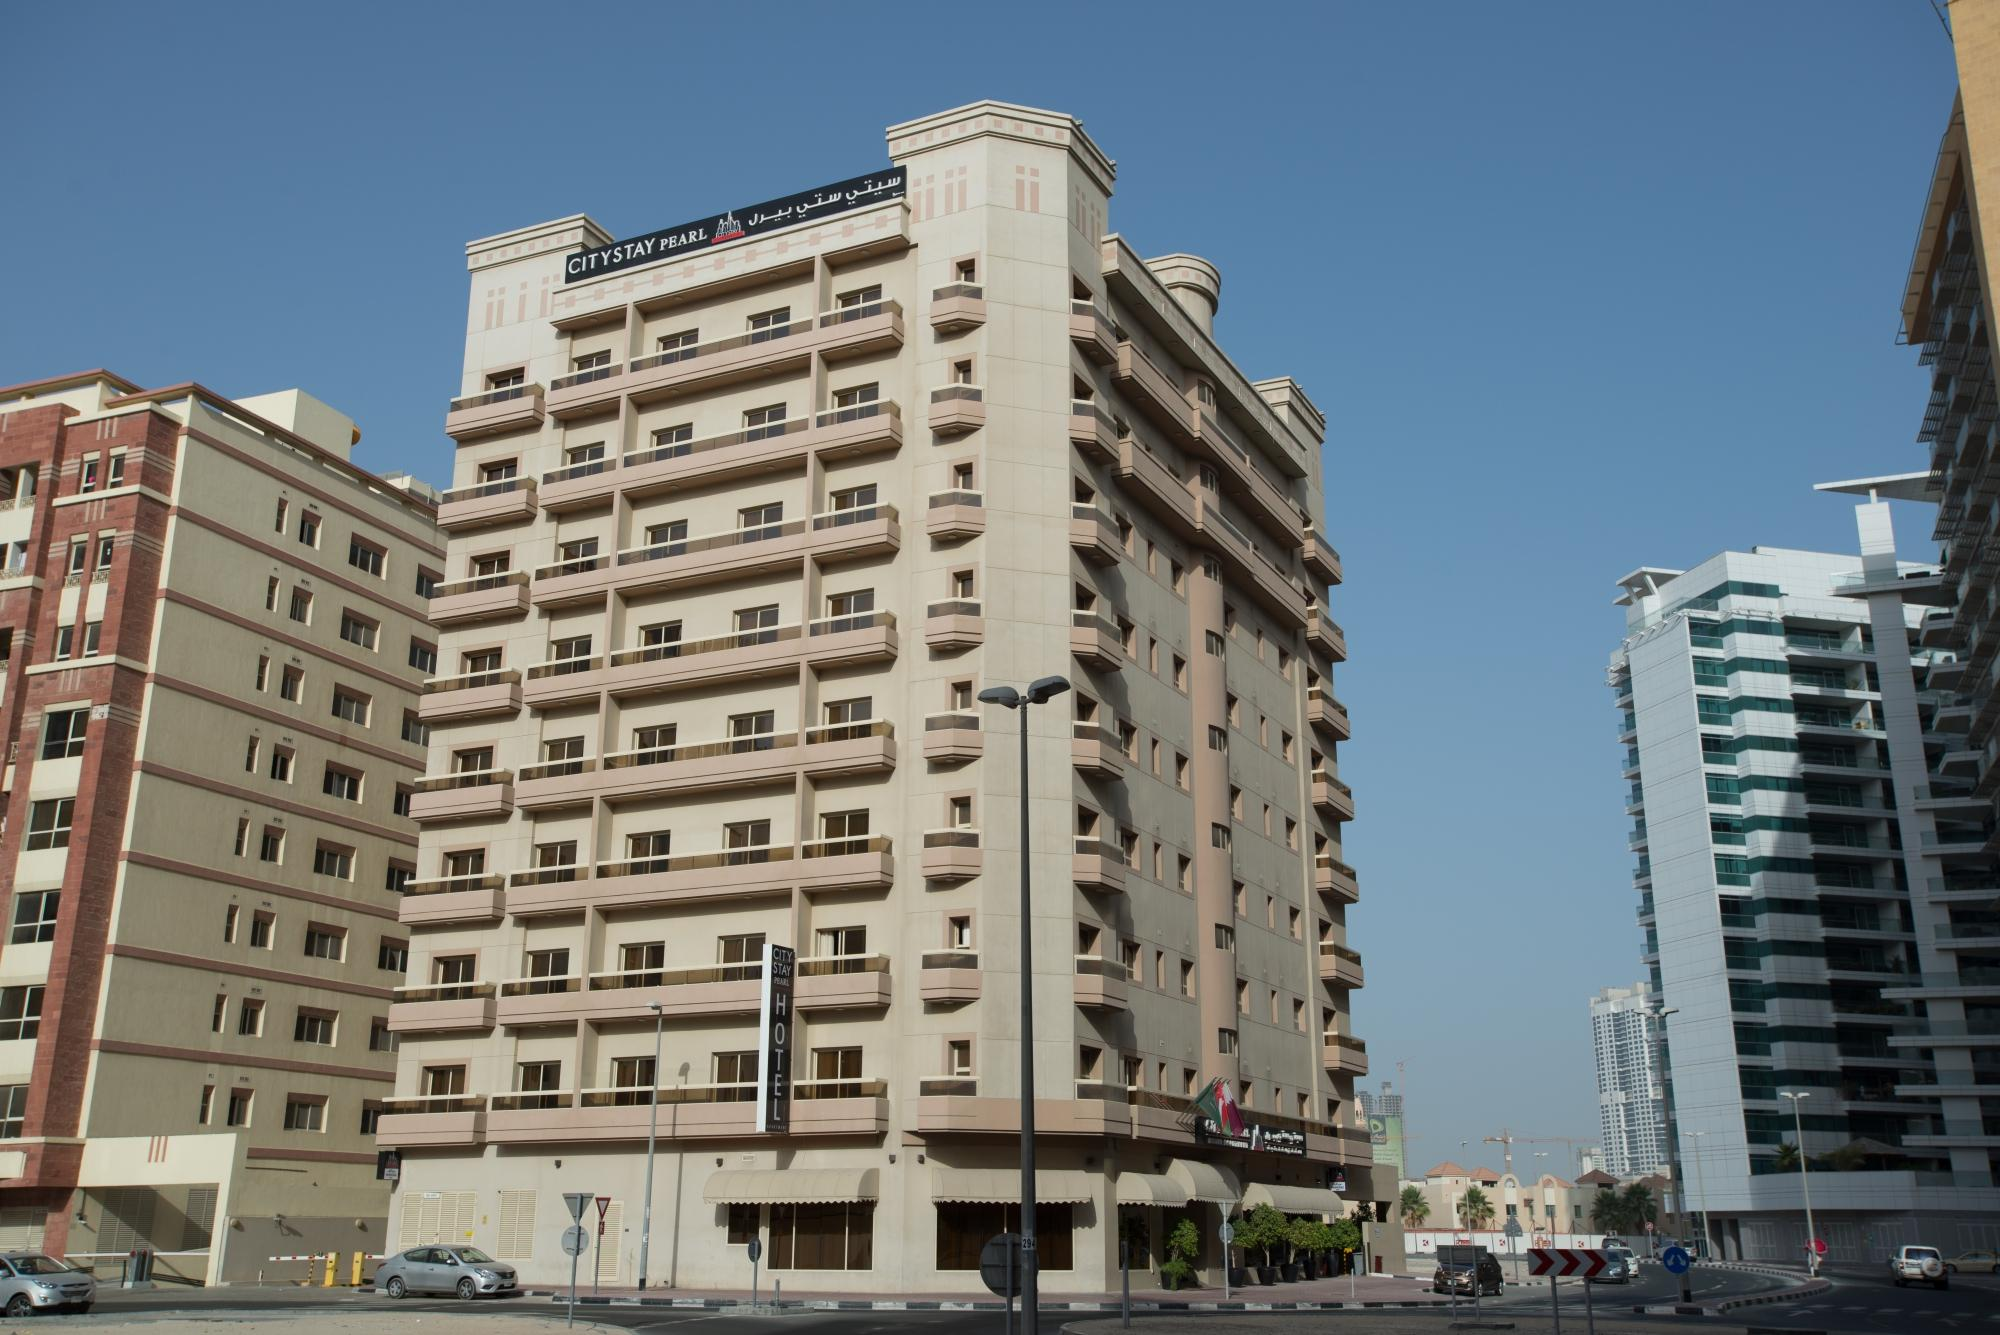 City Stay Pearl Hotel Apartment (ех. Star Metro Hotel al Barsha Apt), 4*, Дубай ryad mogador al madina ex lti al madina palace 4 агадир